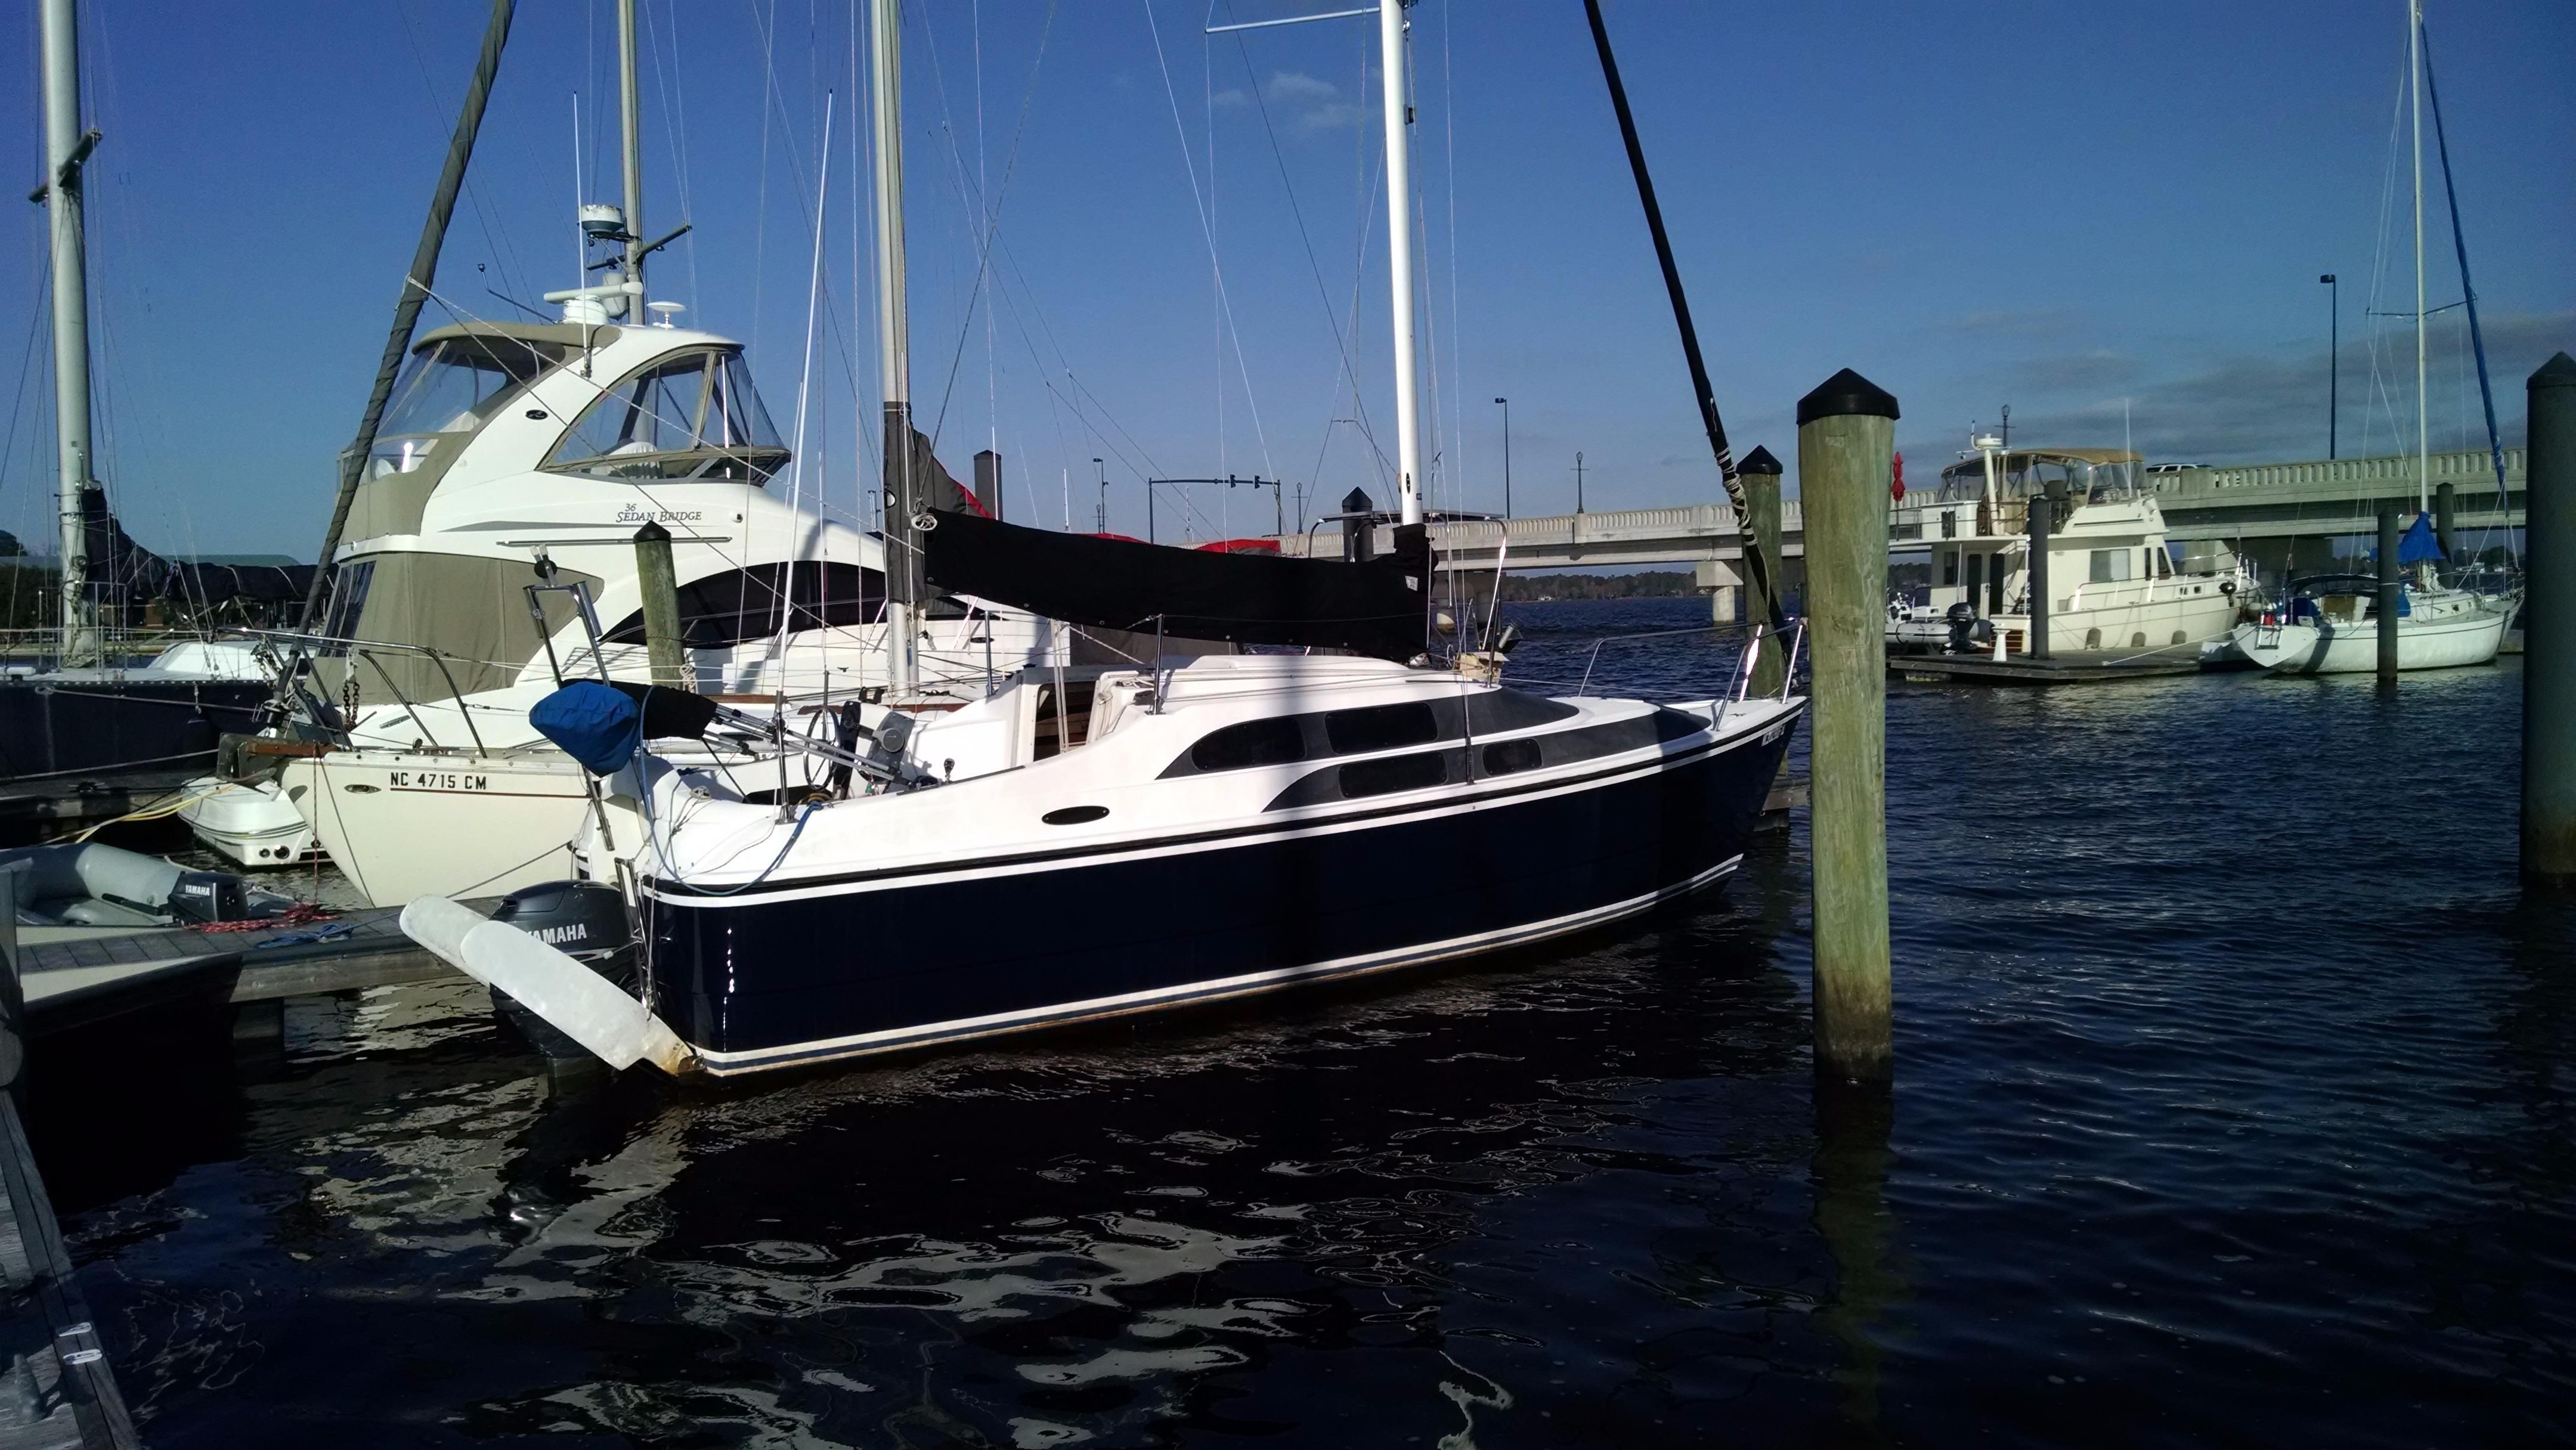 New Bern (NC) United States  city photos gallery : 2006 Macgregor 26M Sail Boat For Sale www.yachtworld.com